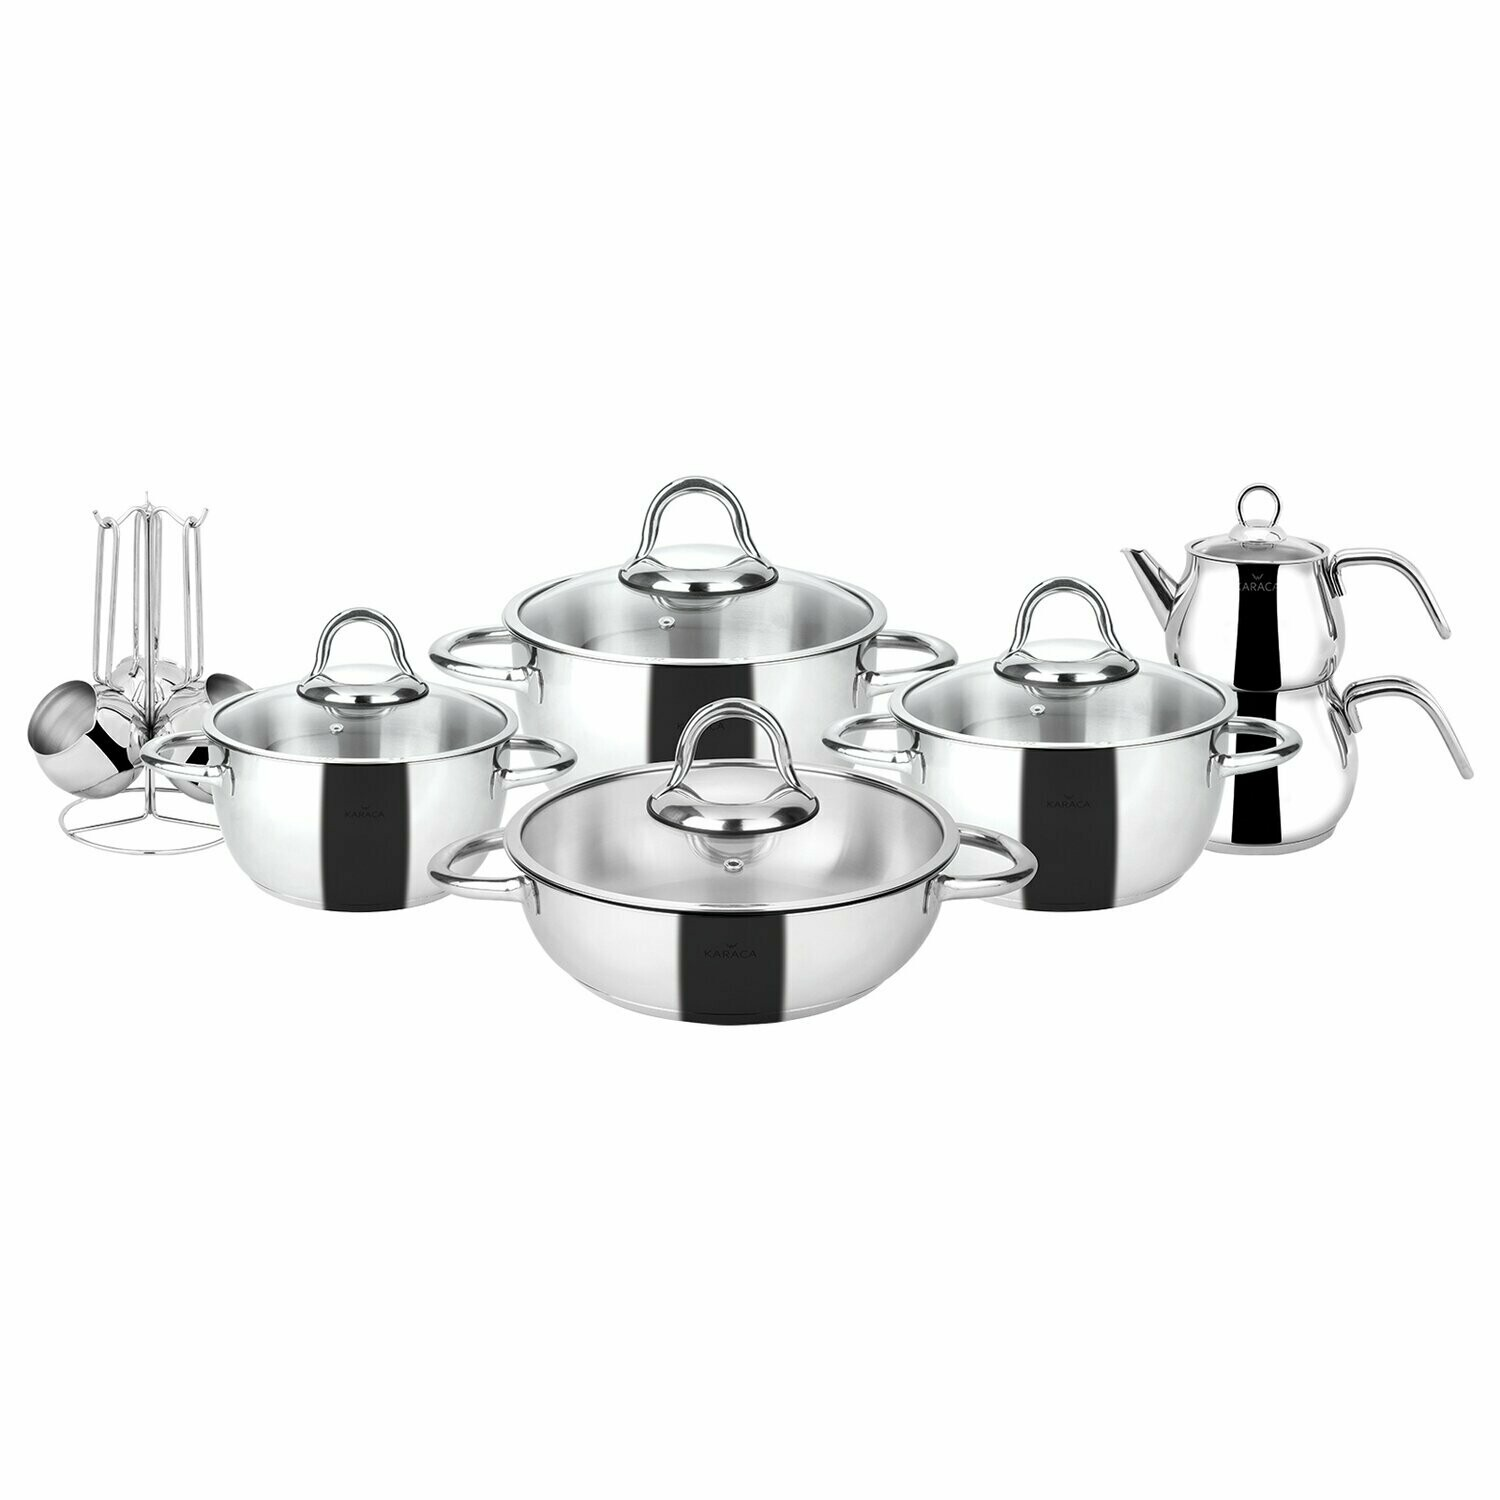 Karaca Sevilla 15 Piece Steel Dowry Set CookWARE WITH TEAPOT